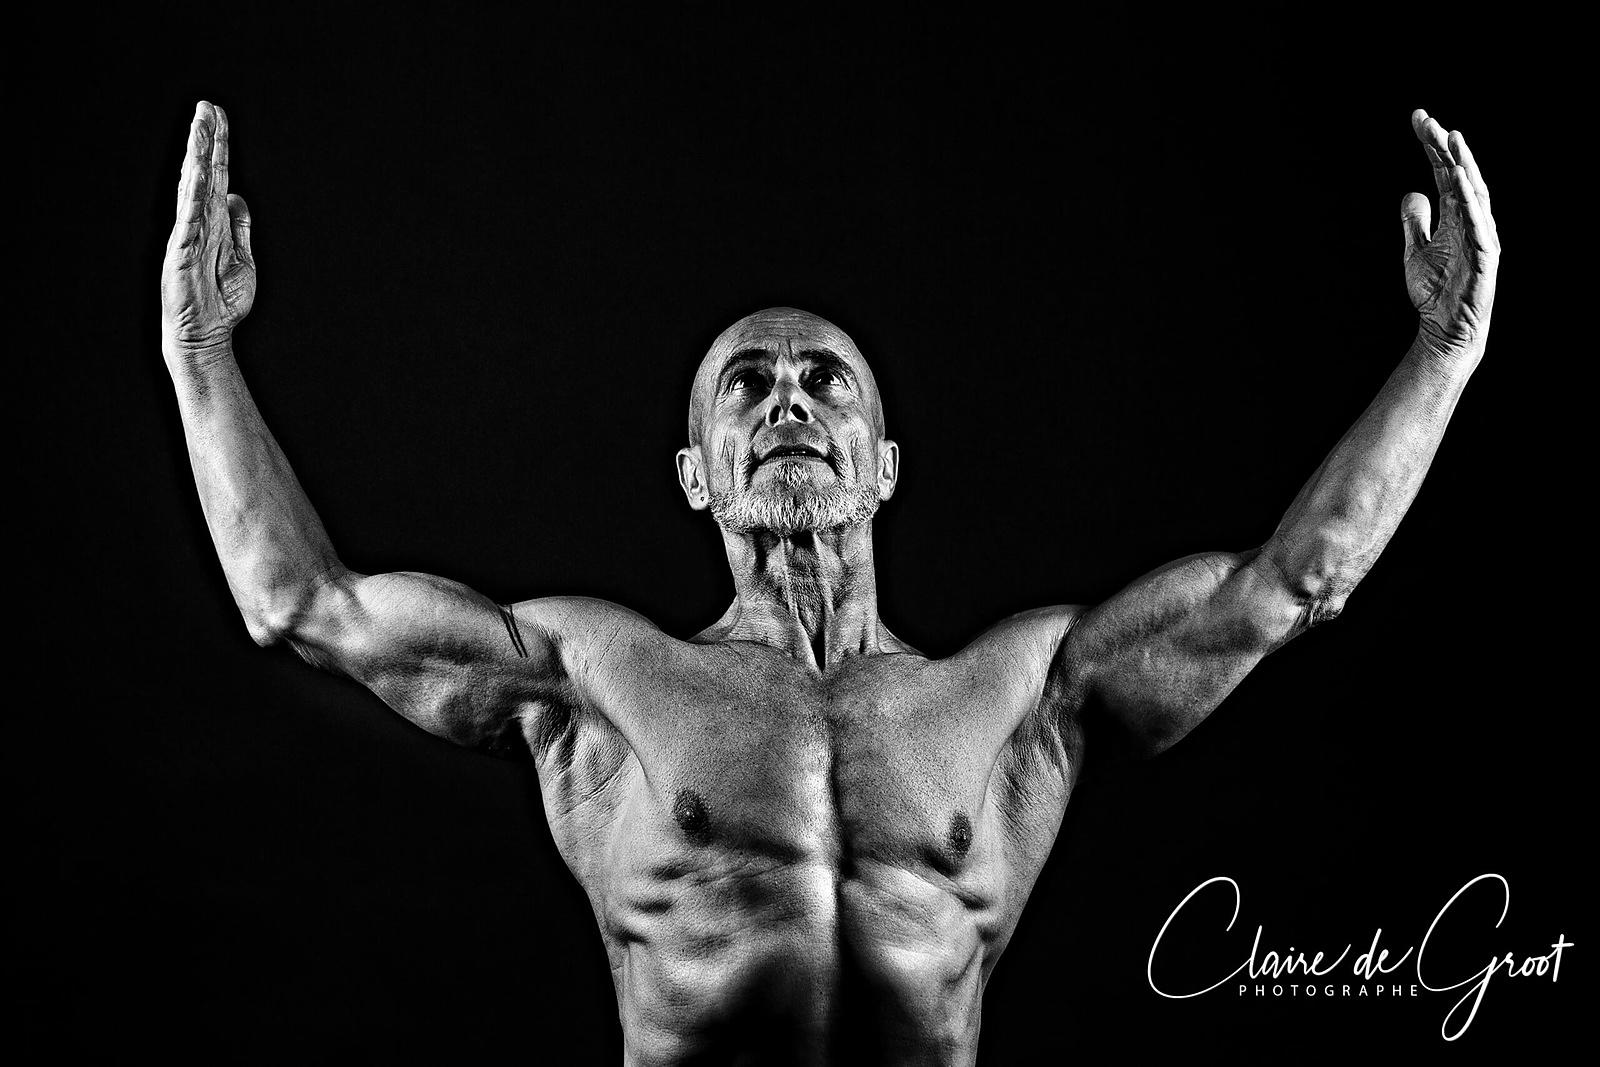 Studio Sports Portrait of a bodybuilder